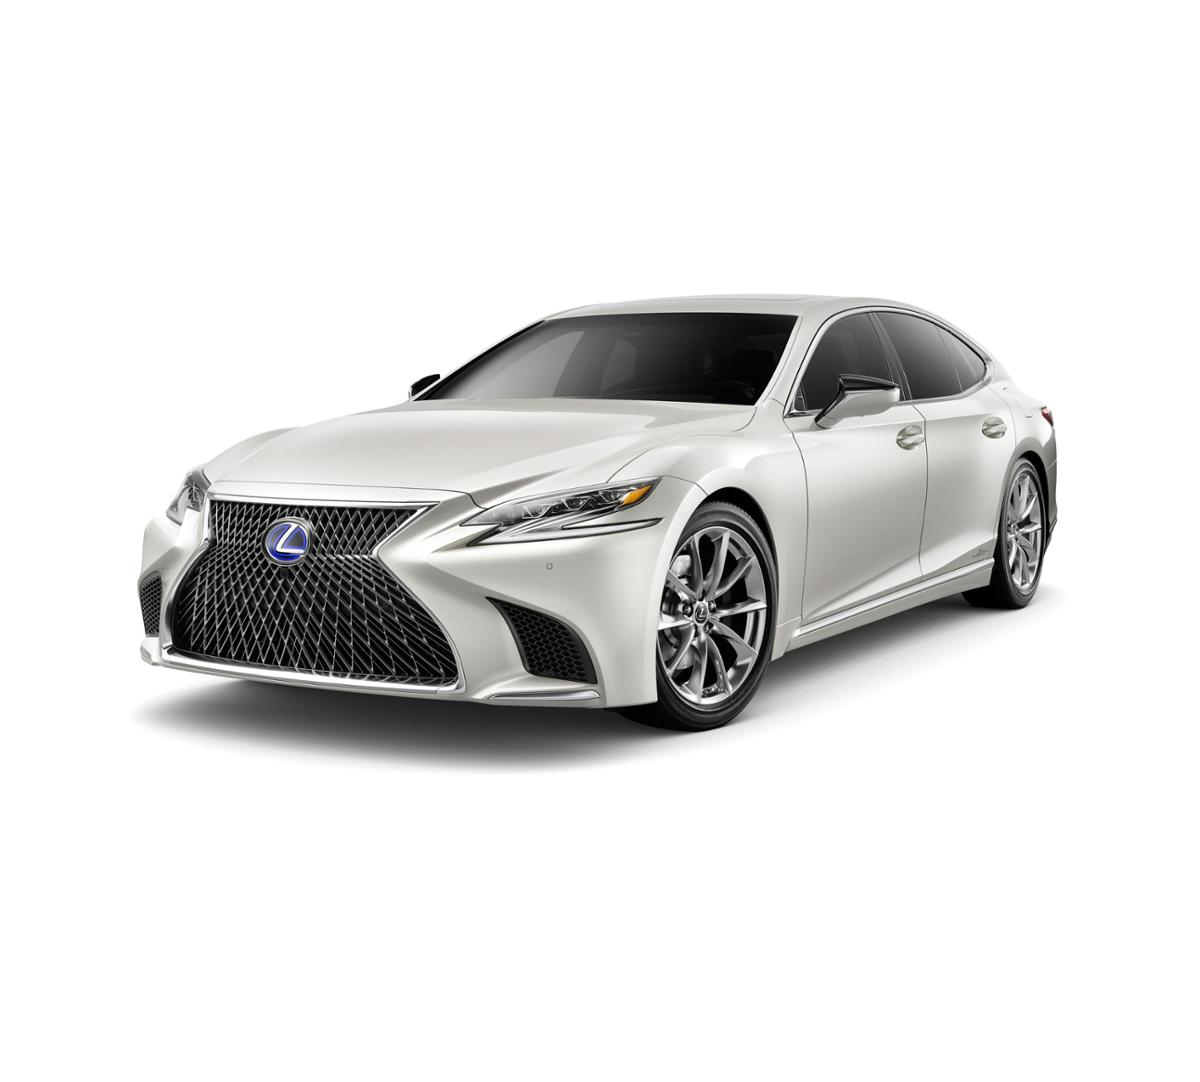 2018 Lexus LS 500h Vehicle Photo in Santa Monica, CA 90404